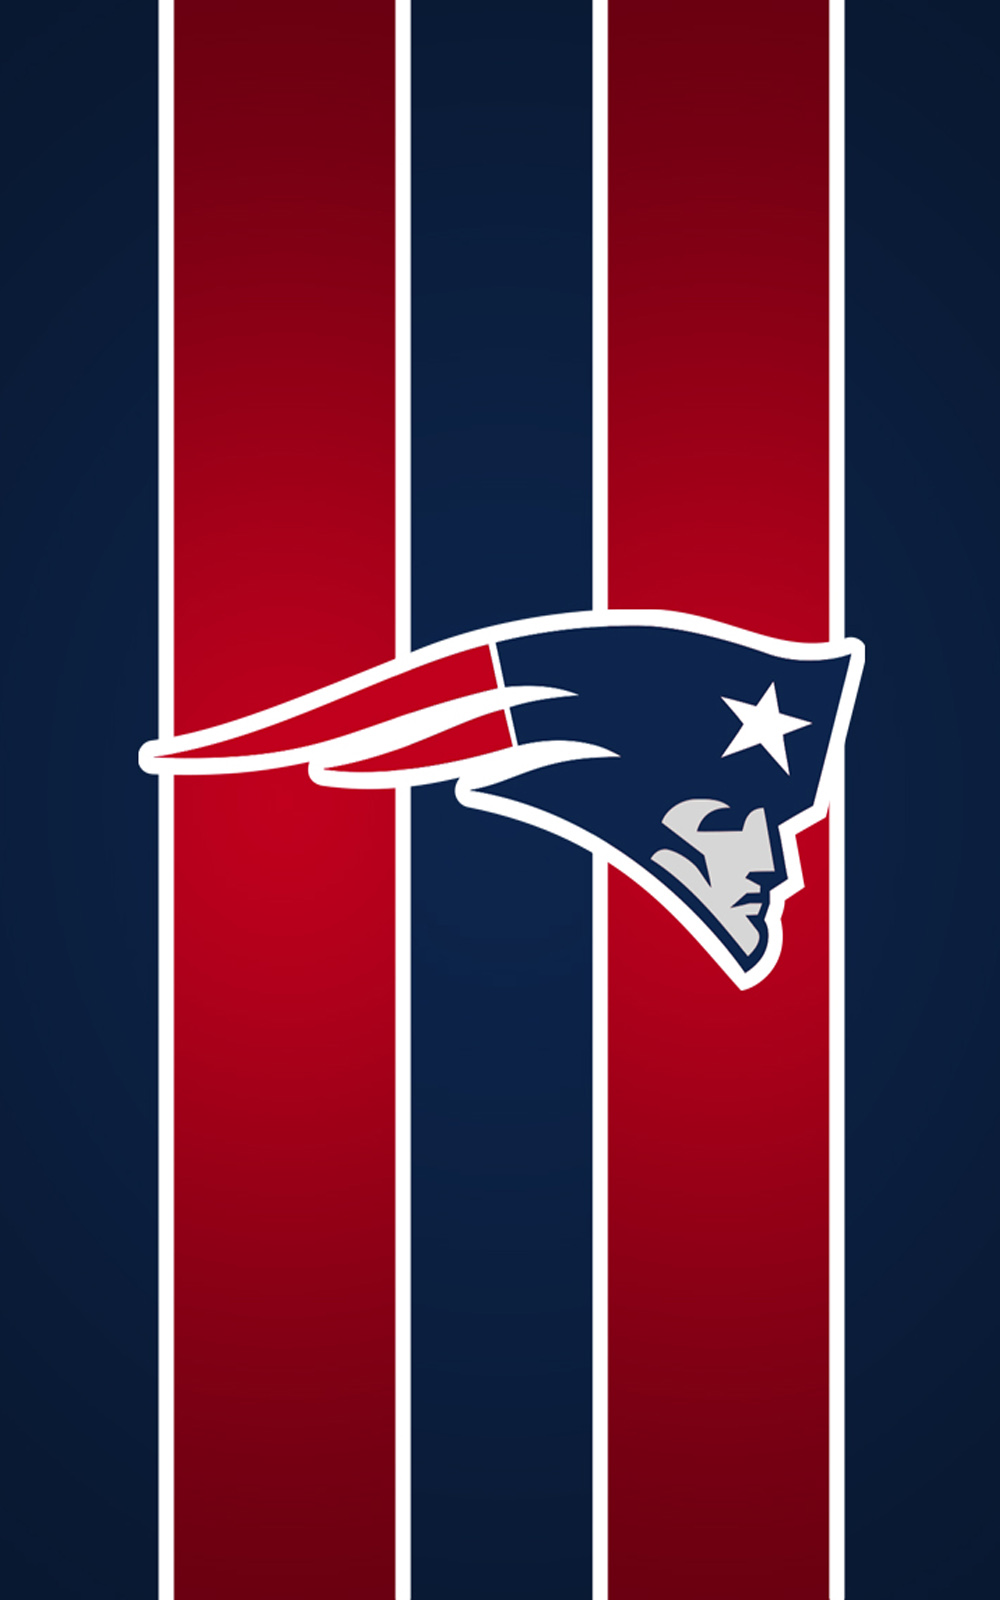 new england patriots download free hd mobile wallpapers